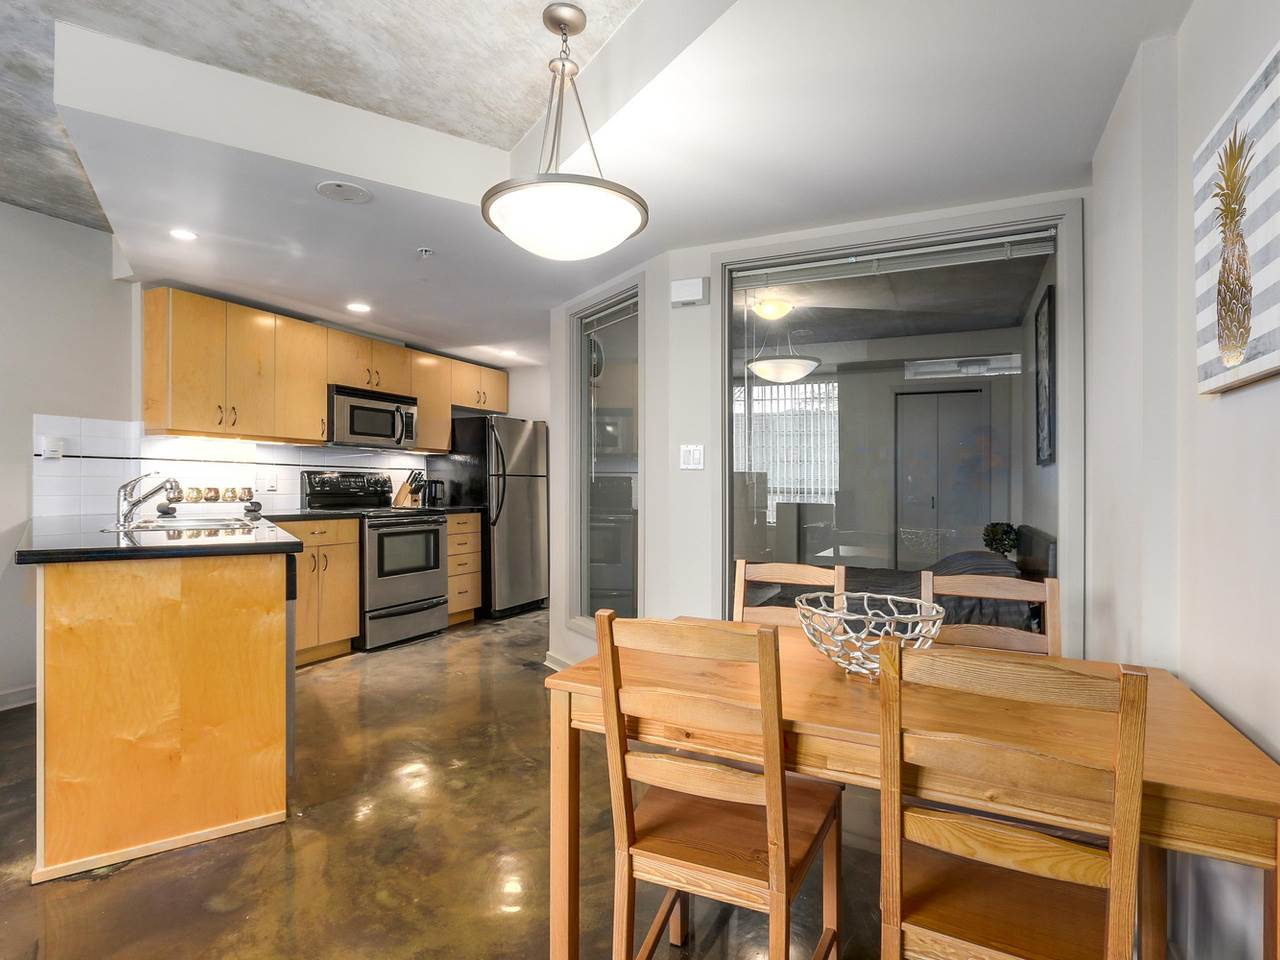 Condo Apartment at 905 STATION STREET, Vancouver East, British Columbia. Image 4